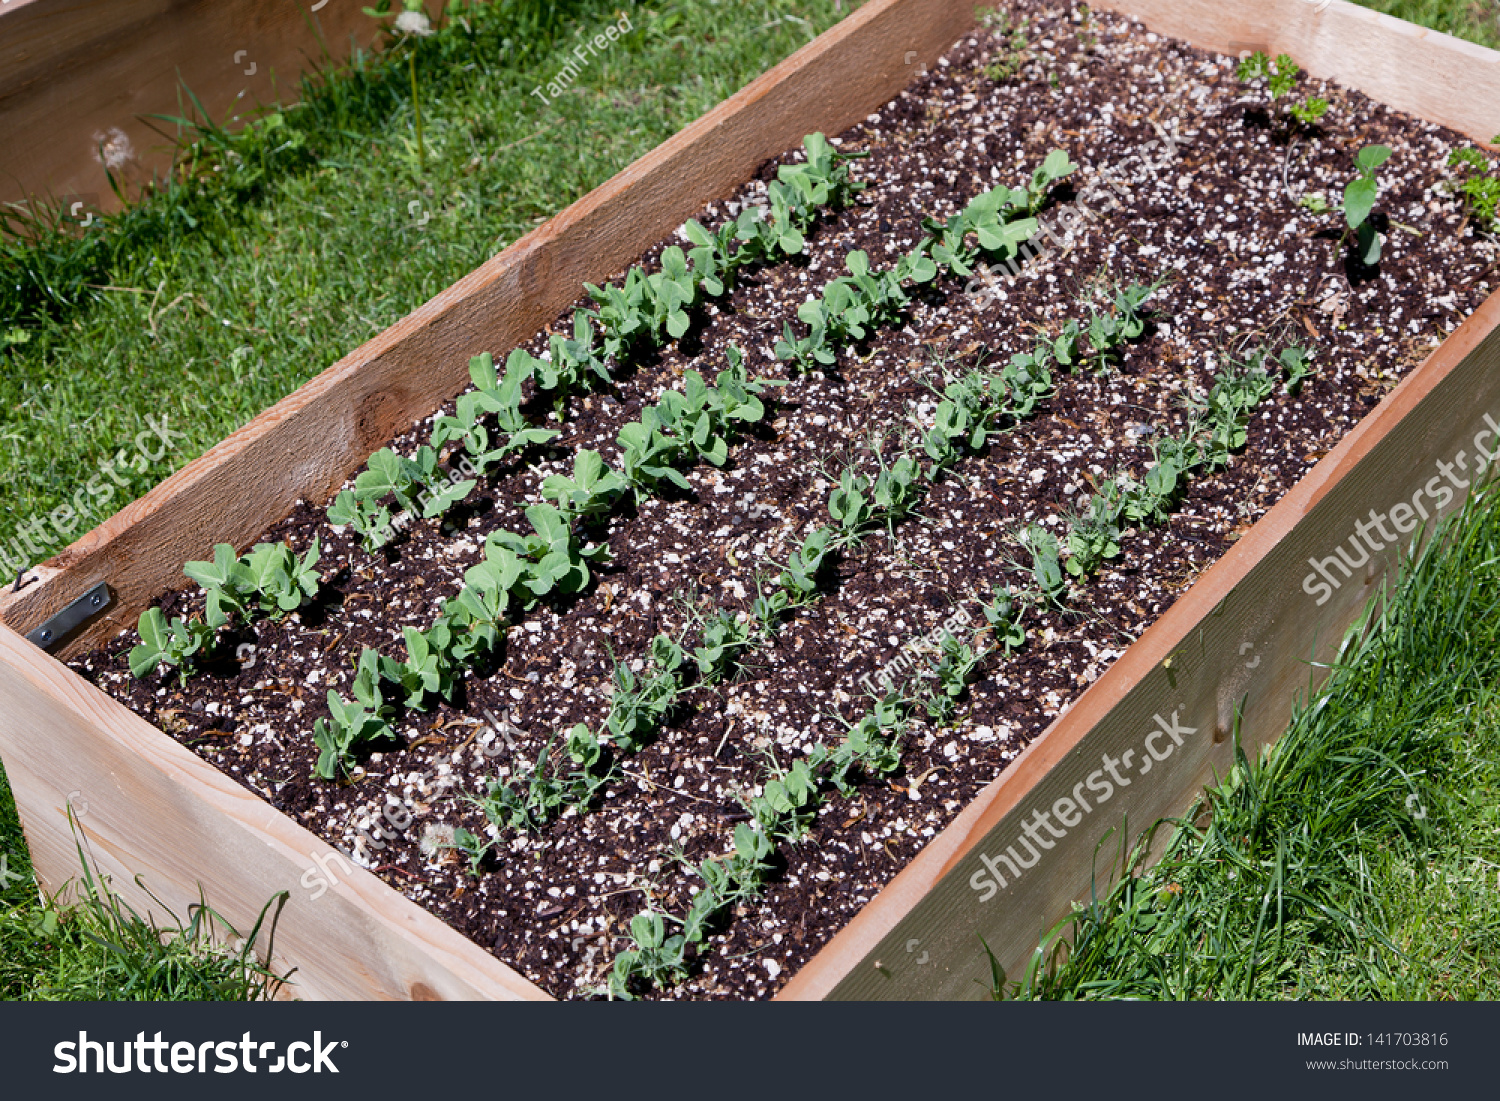 A Wooden Raised Garden Bed With Rows Of Pea Plants Growing